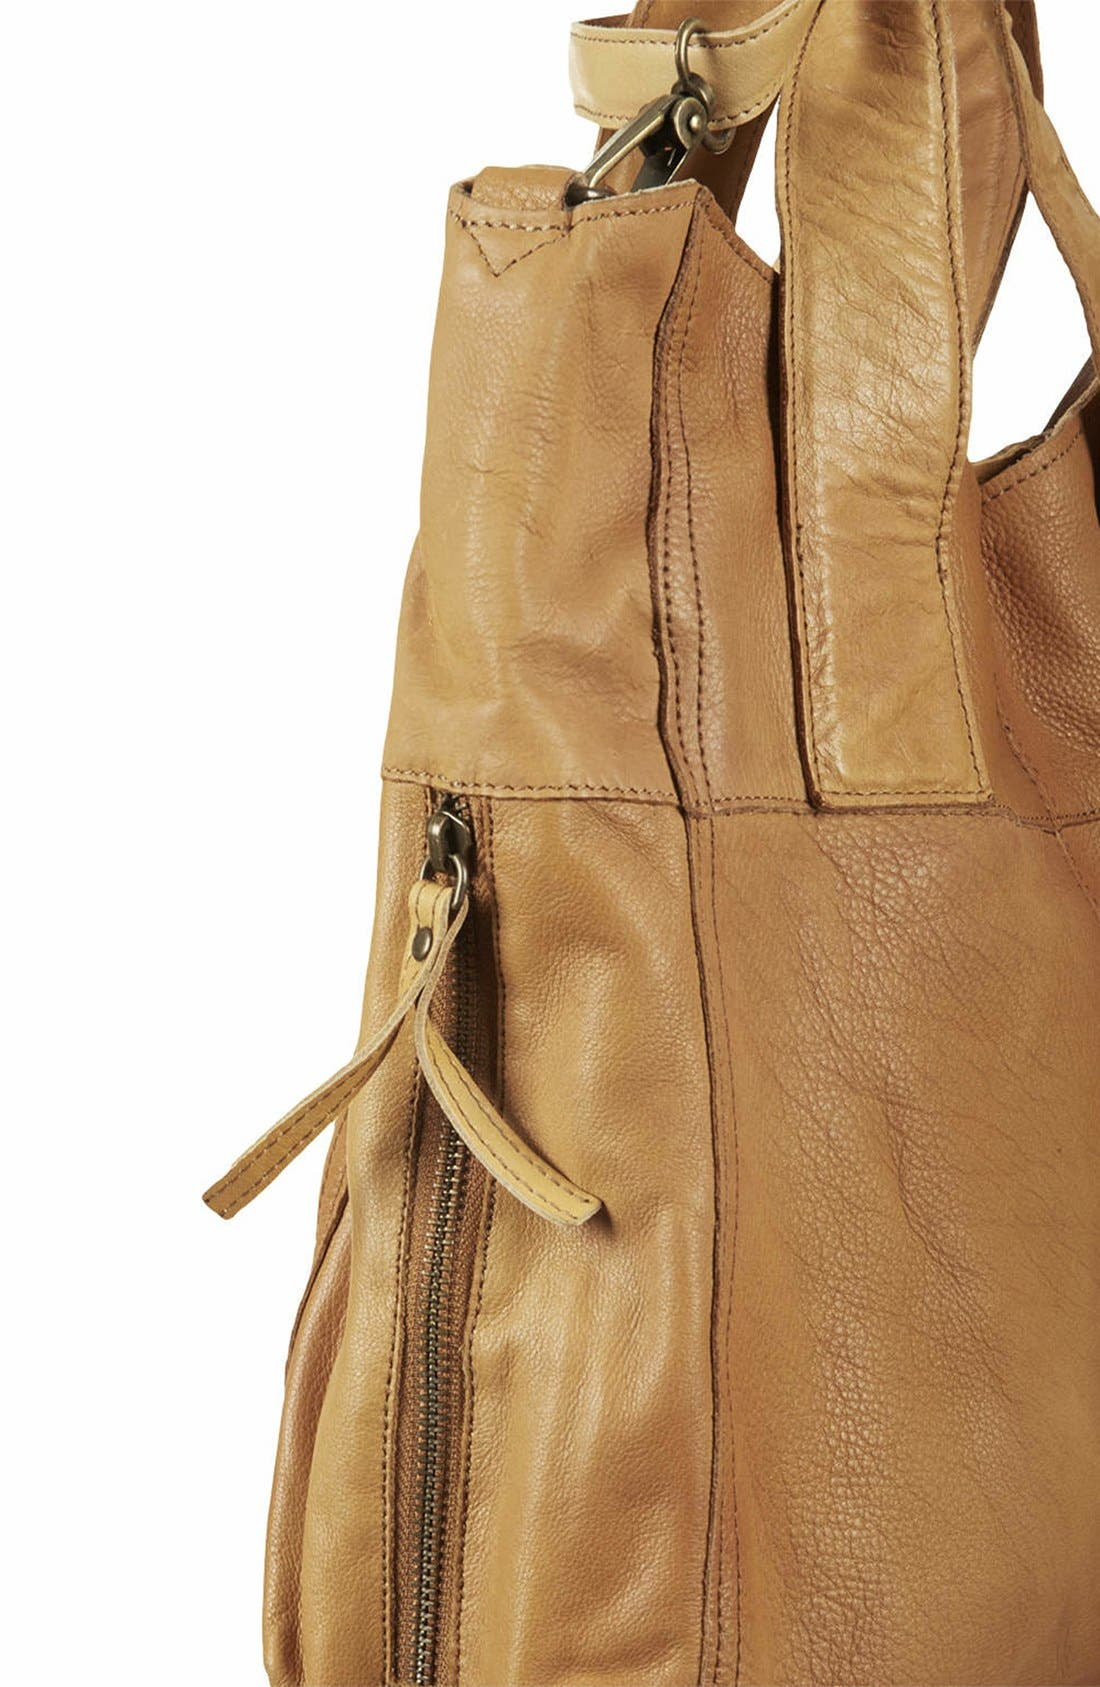 Alternate Image 3  - Topshop 'Alba' Leather Hobo Bag